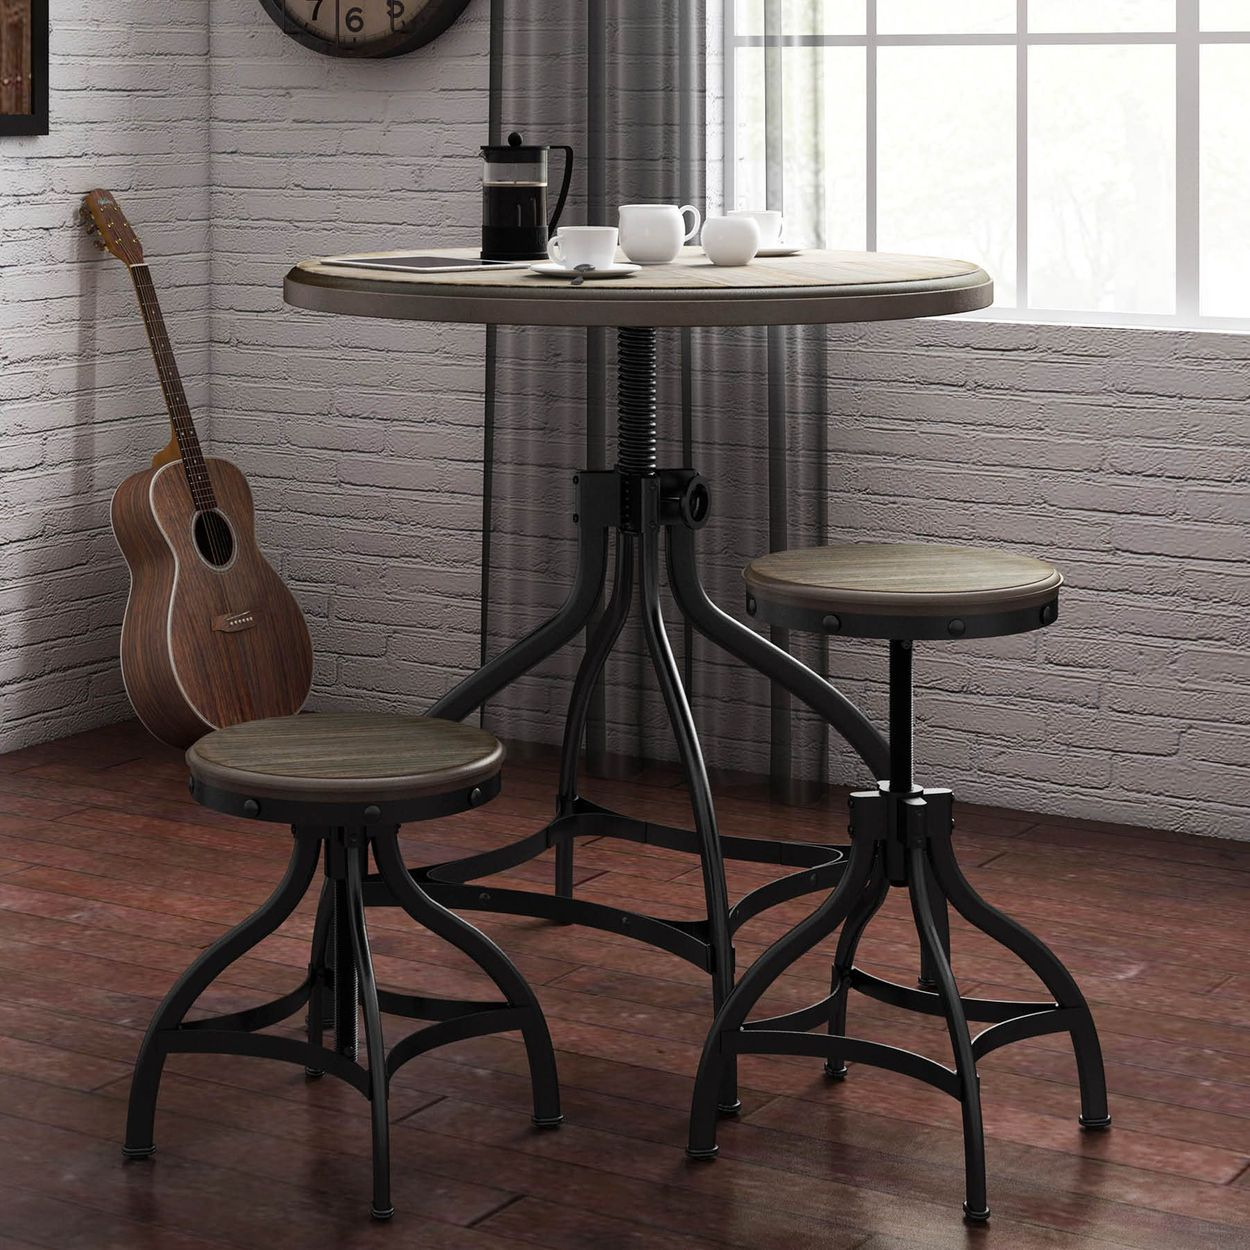 Groovy Set Of 2 Brown Adjustable Stool Beatyapartments Chair Design Images Beatyapartmentscom